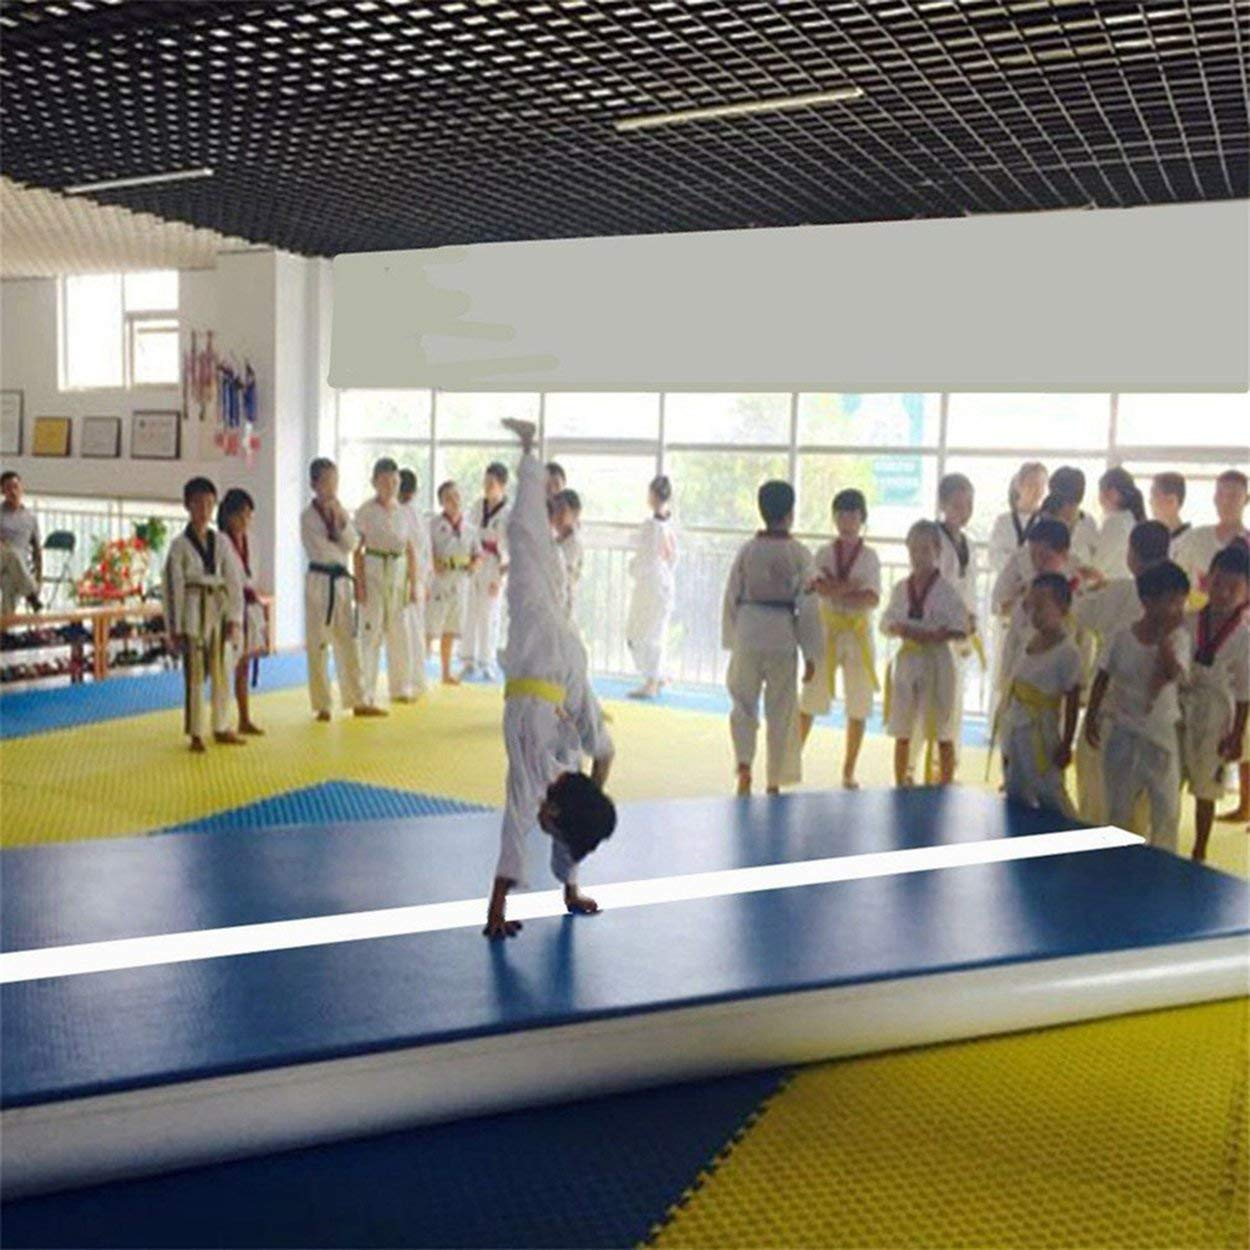 Amazon.com: Taekwondo Cushion Inflatable Mat Gymnastics Air ...